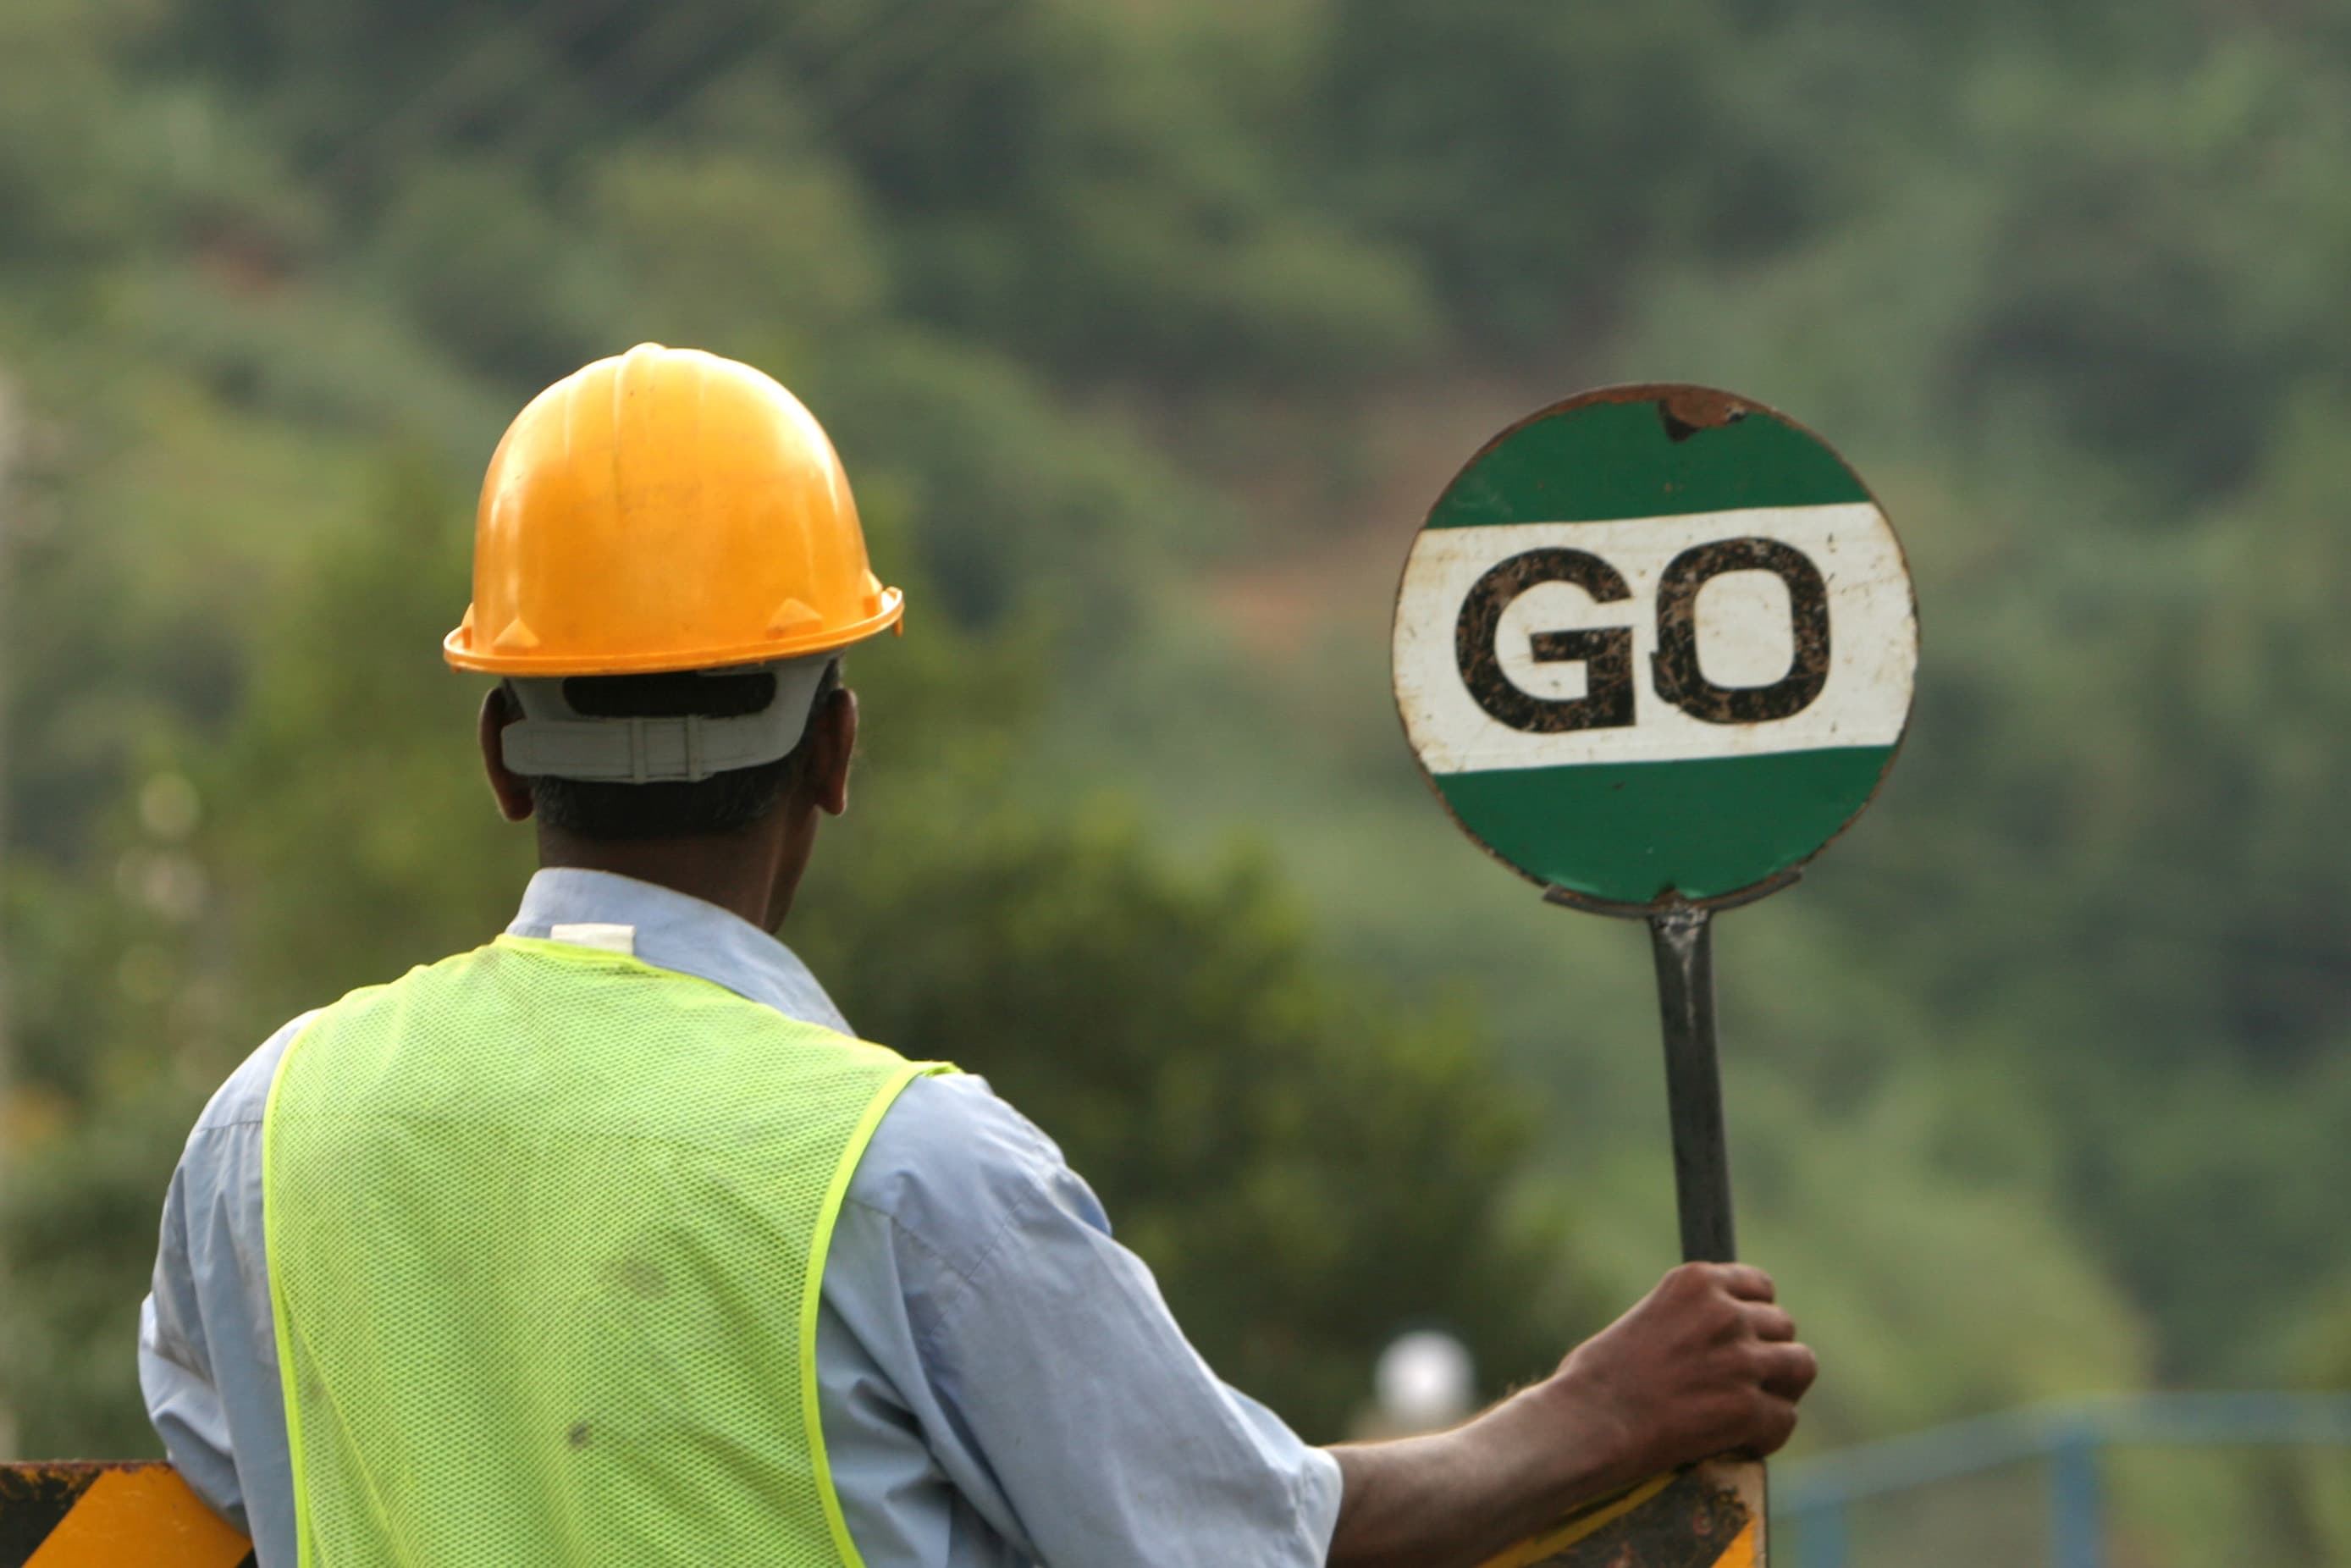 Workman holding 'Go' sign